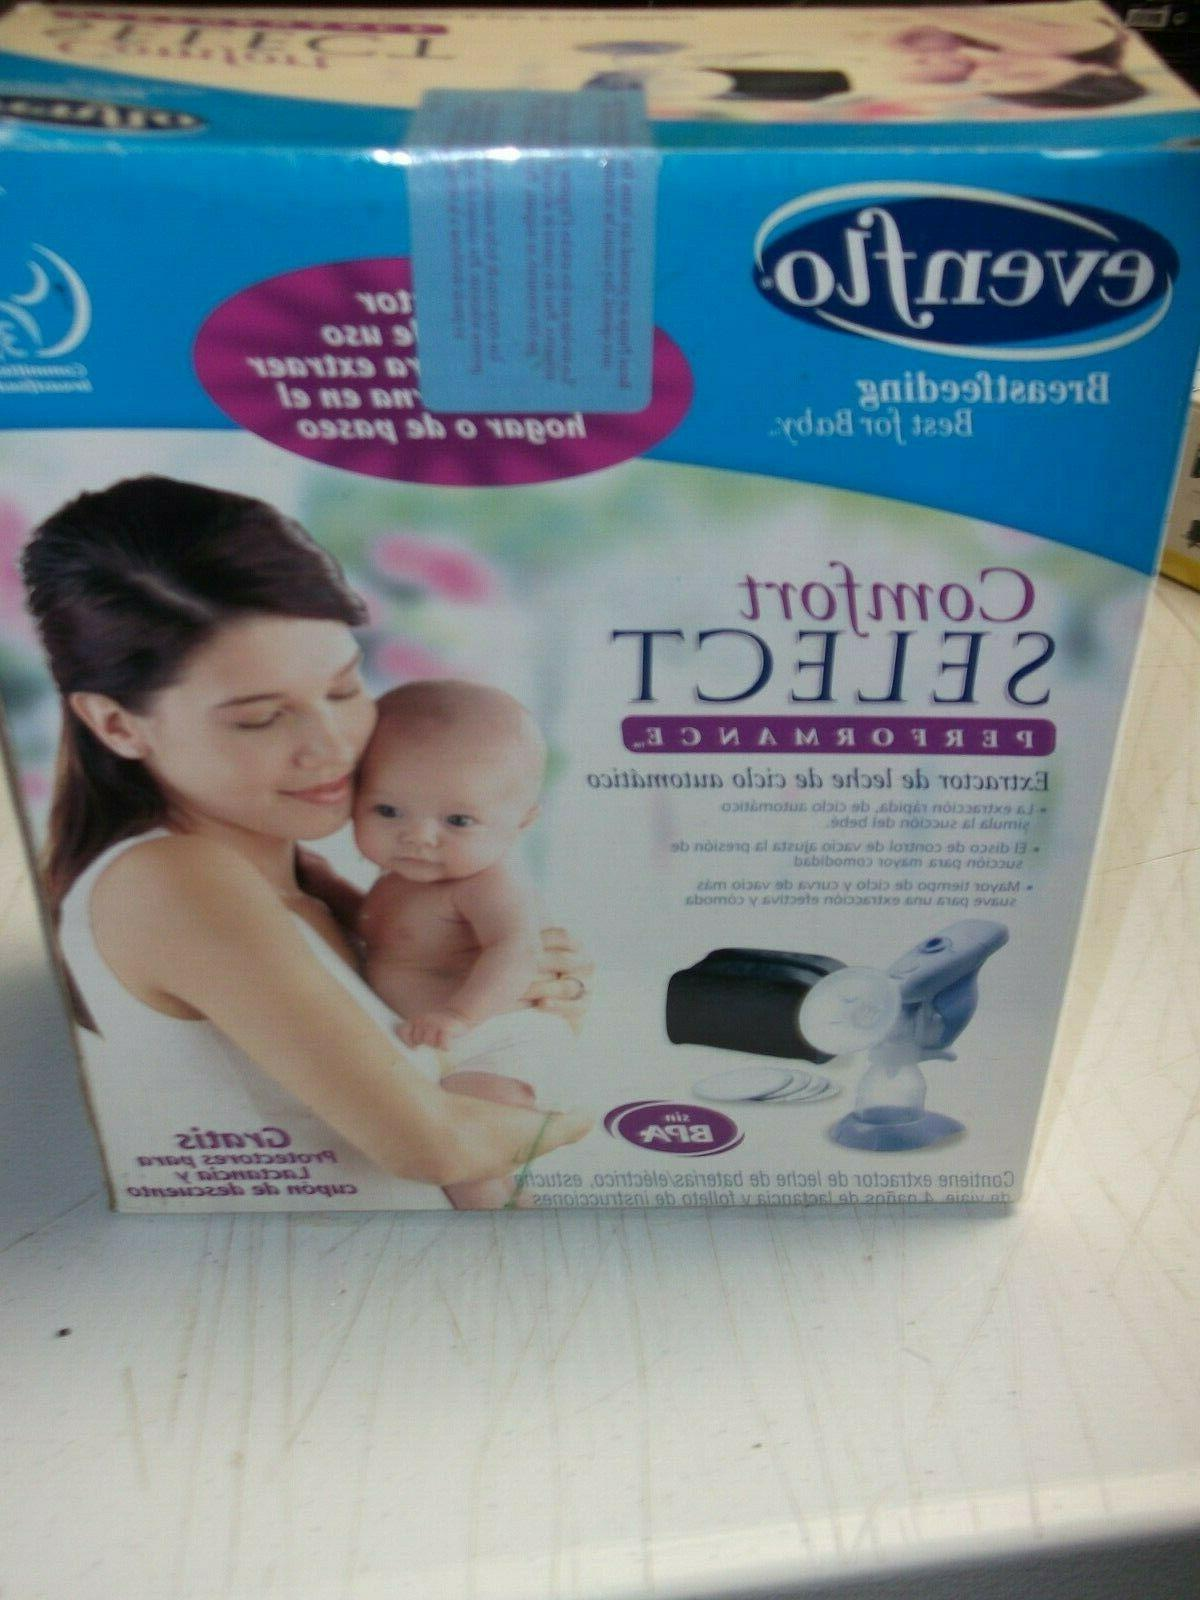 Evenflo Comfort Select Performance Auto-Cycling Breast Pump